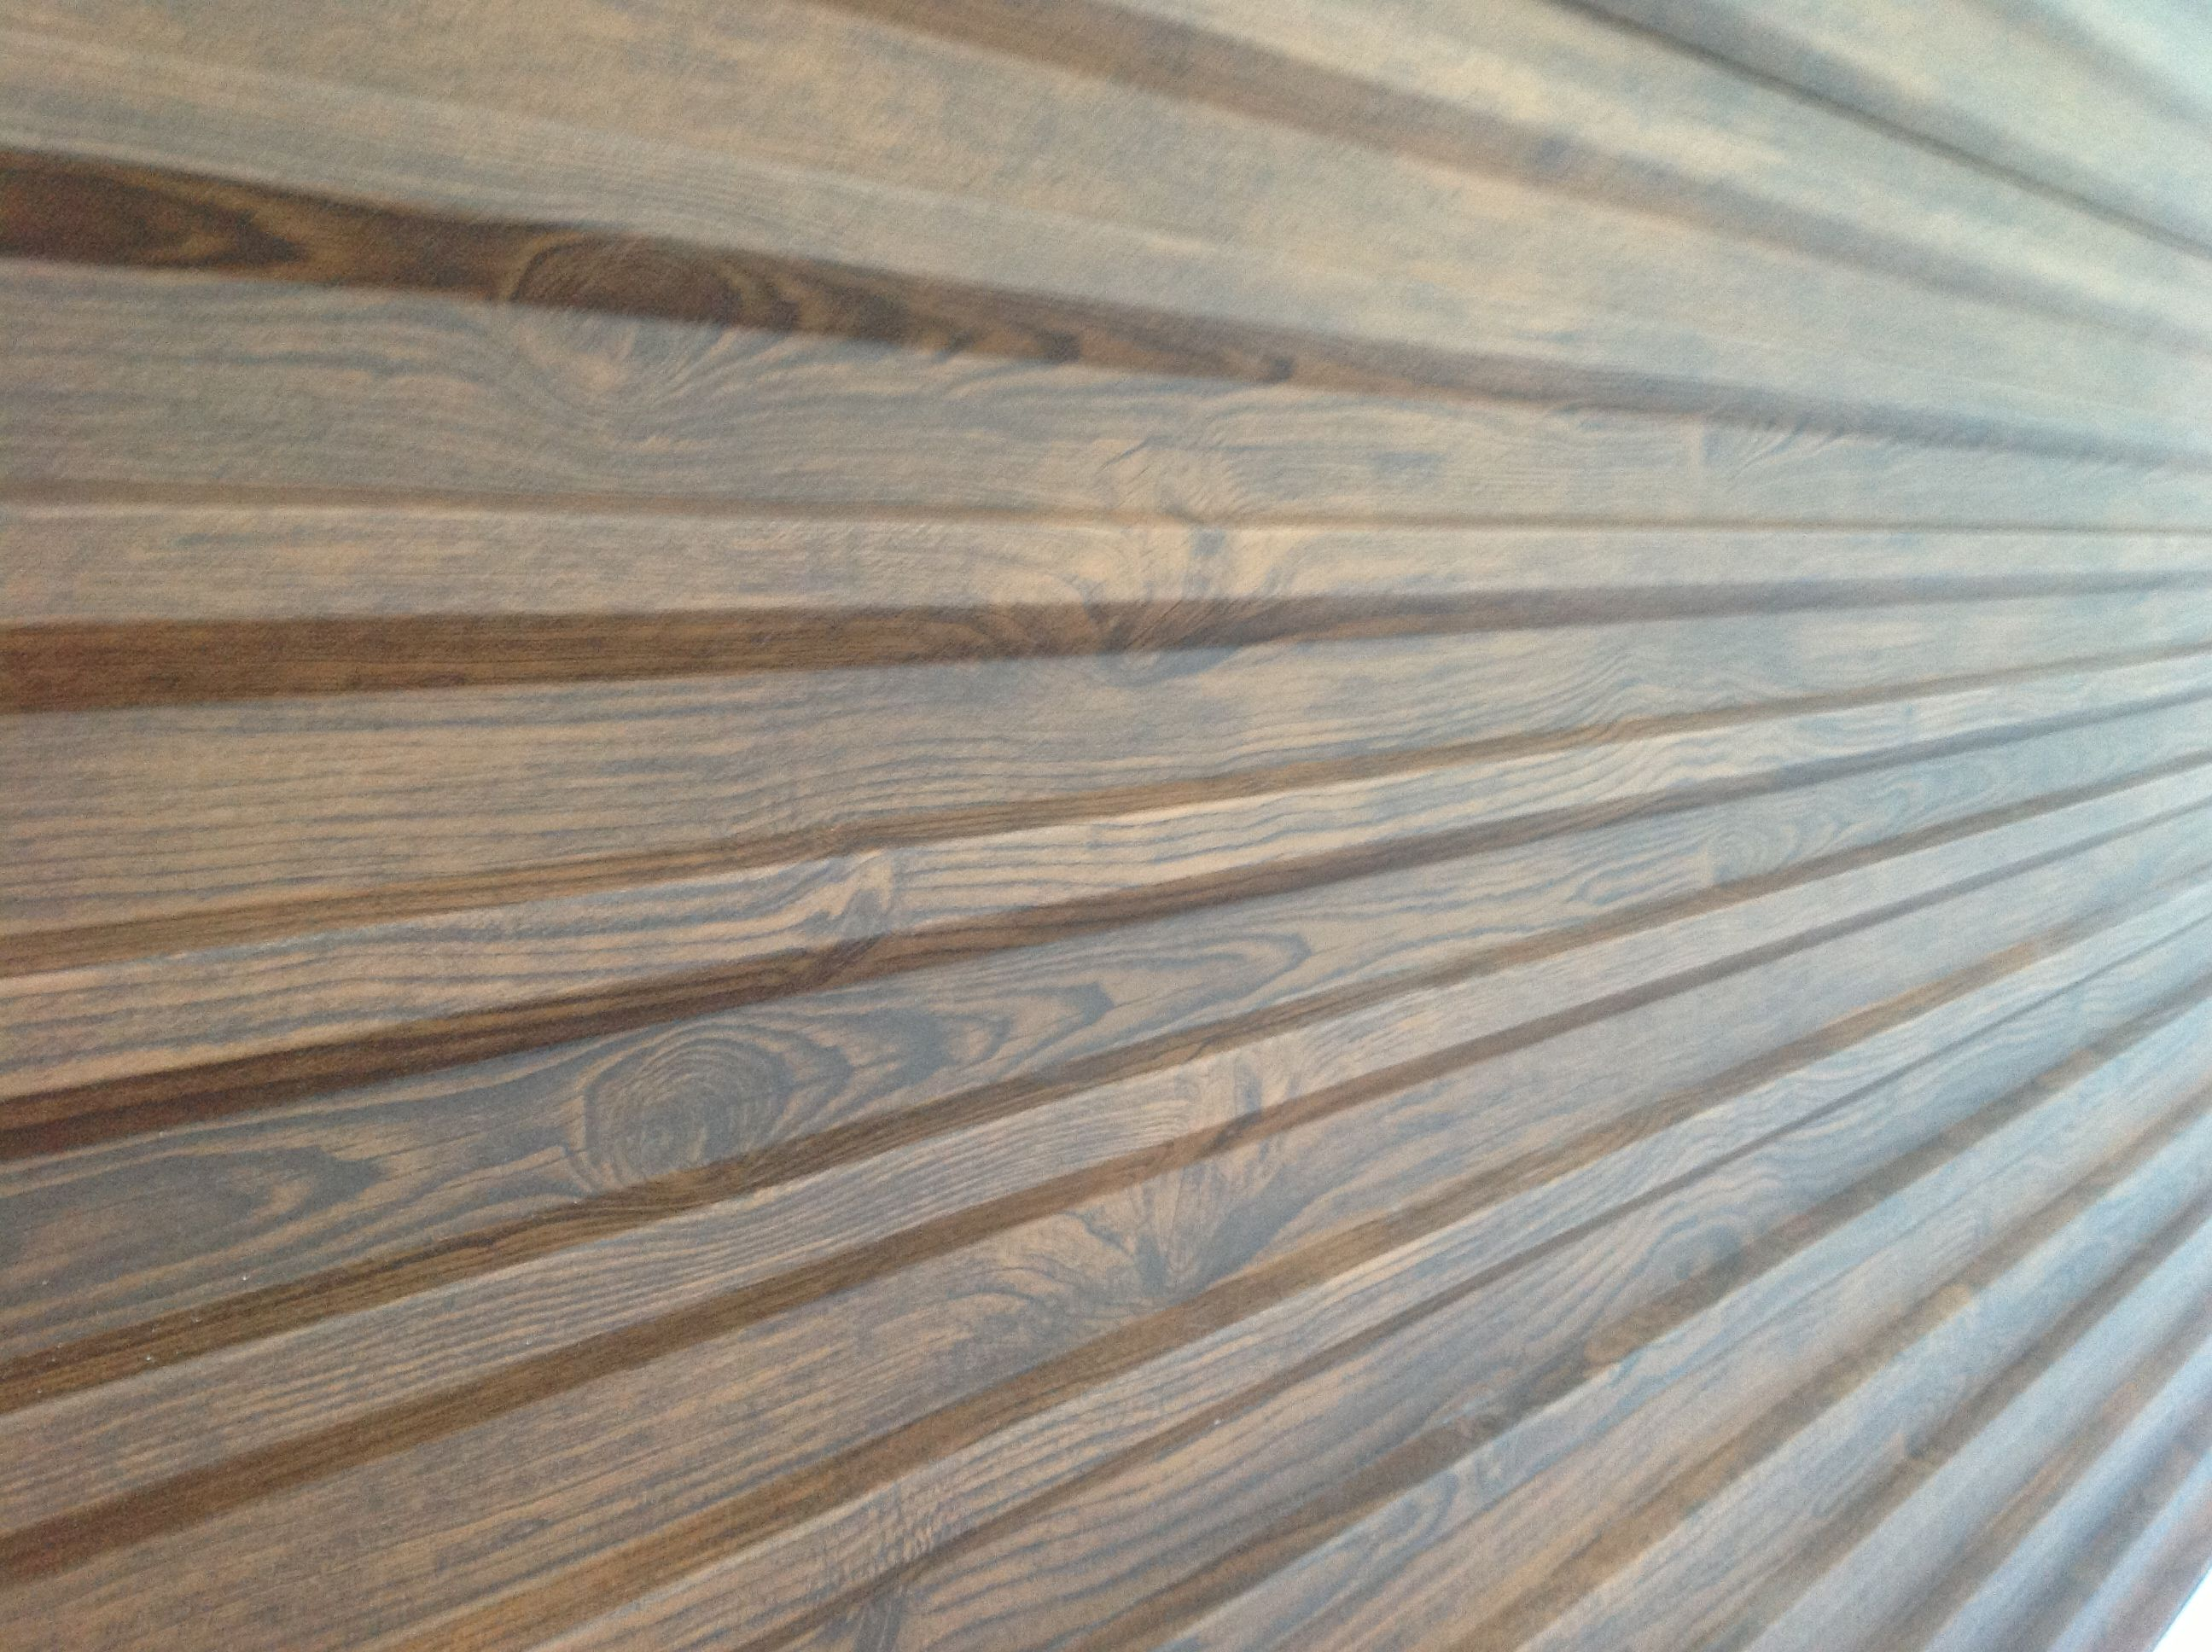 metal siding with wood grain finish